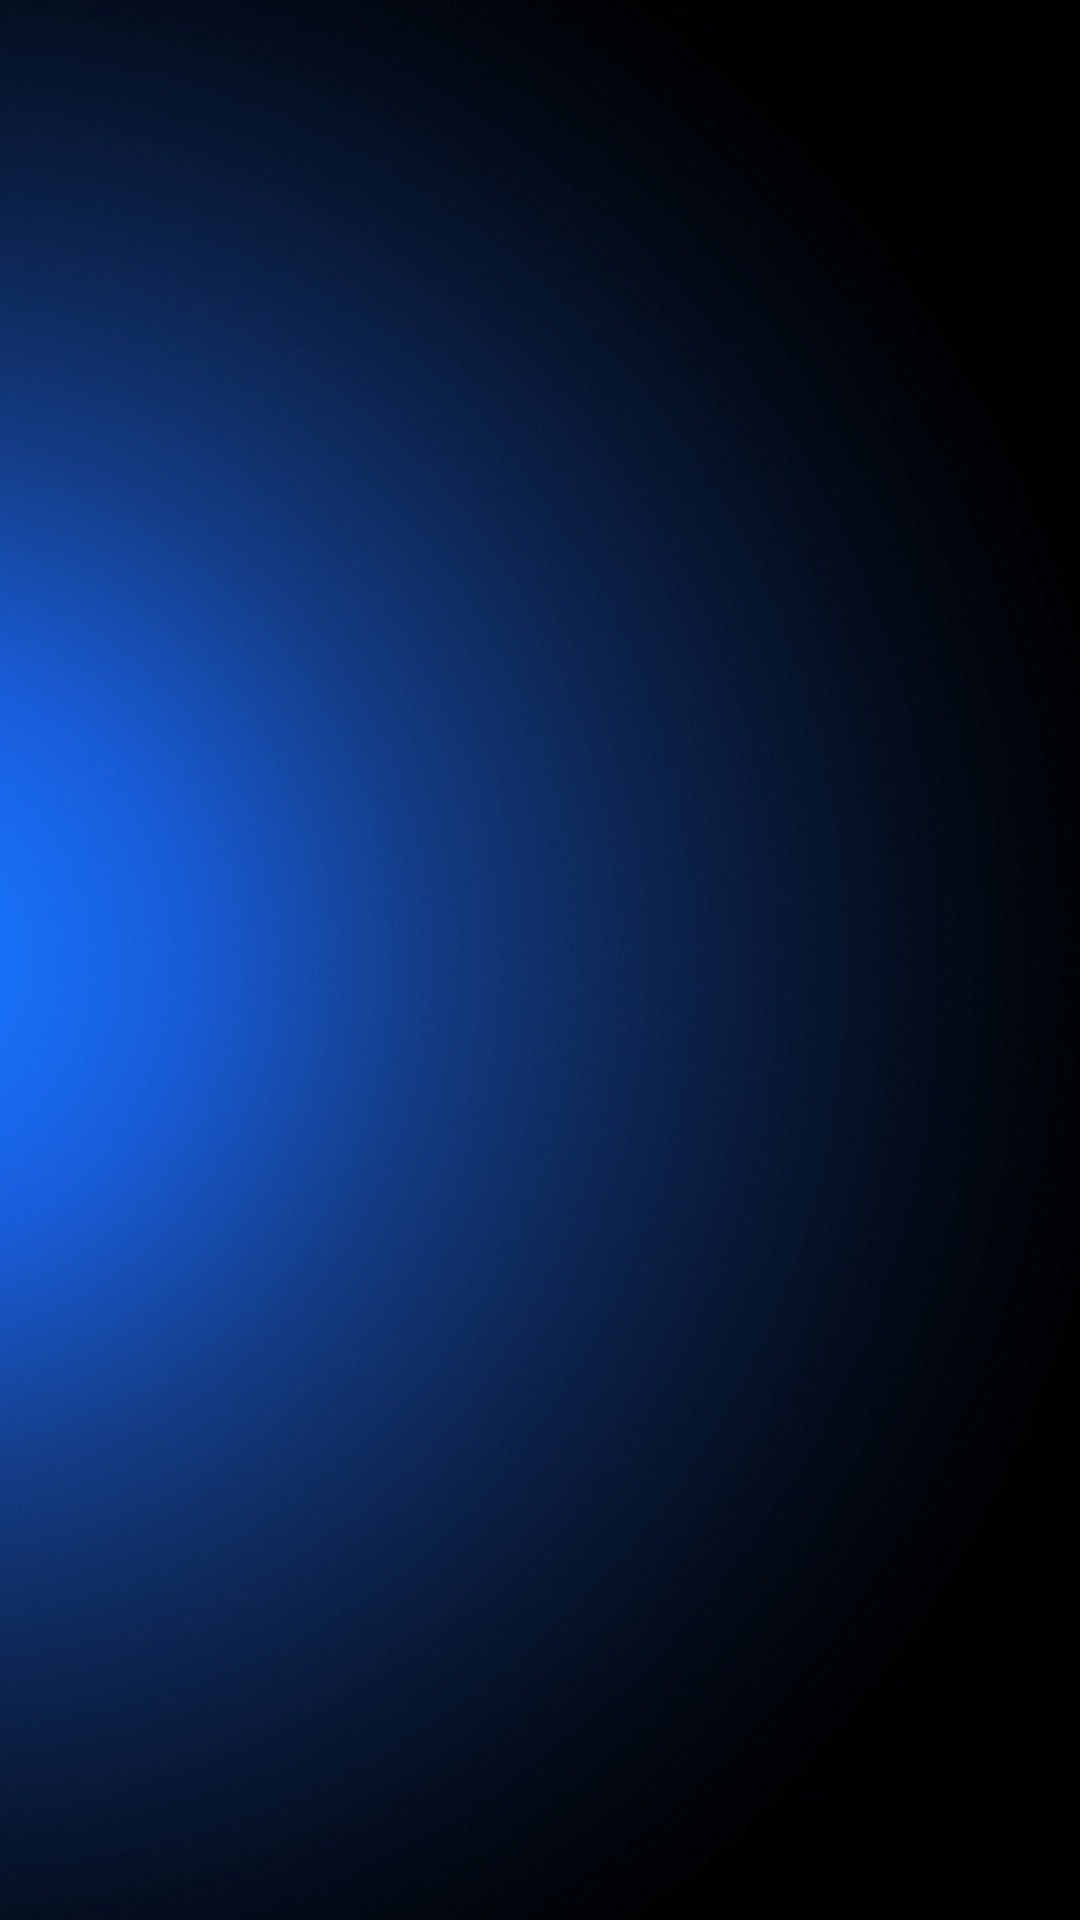 Blue Gradient Wallpaper Iphone  2018 Iphone Wallpapers